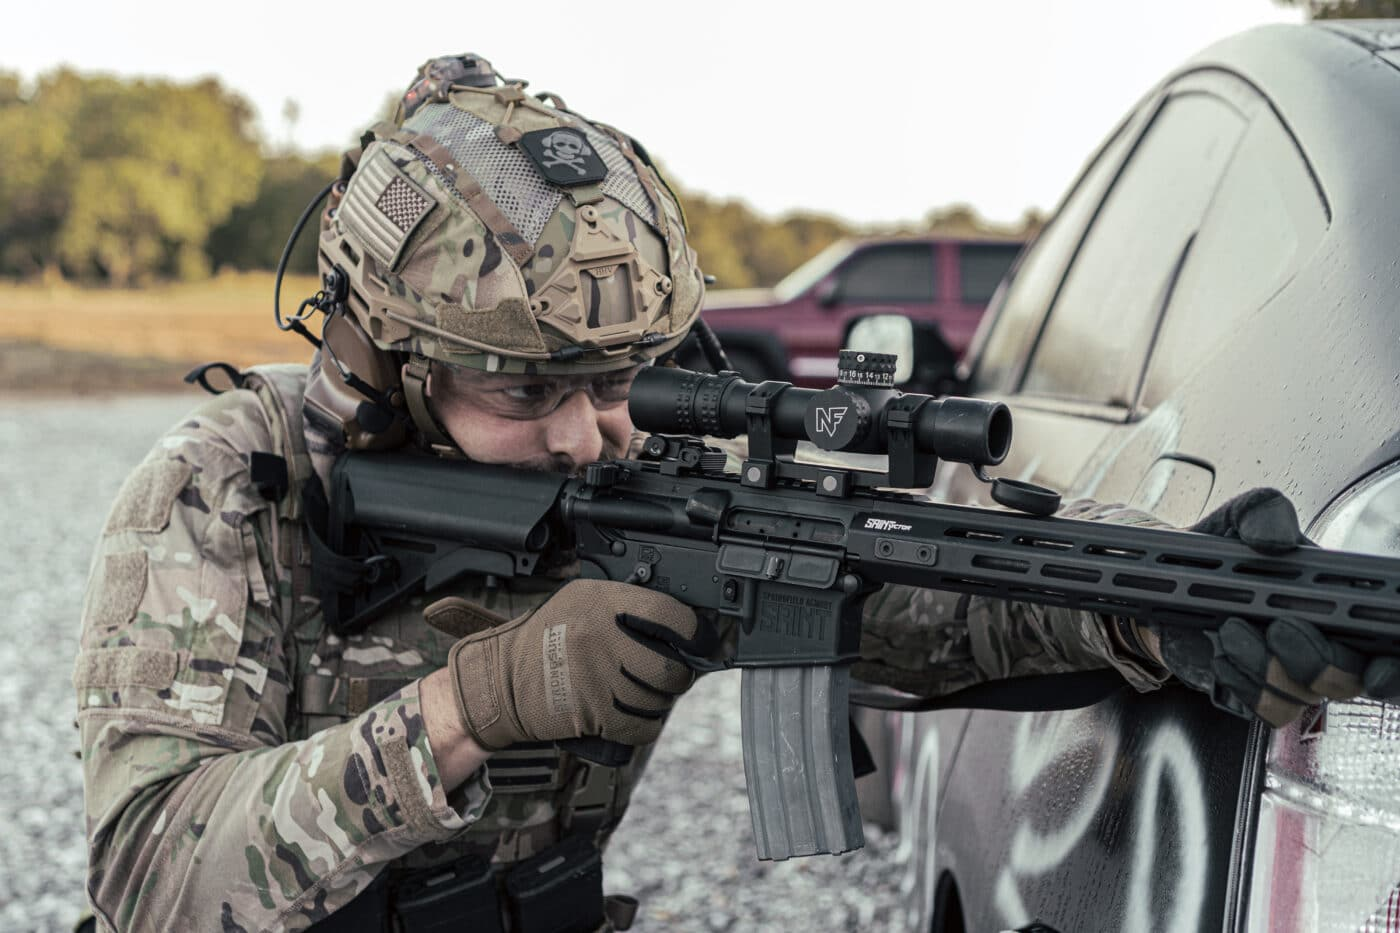 Solder using rifle with Nightforce NX8 1-8x first focal plane scope